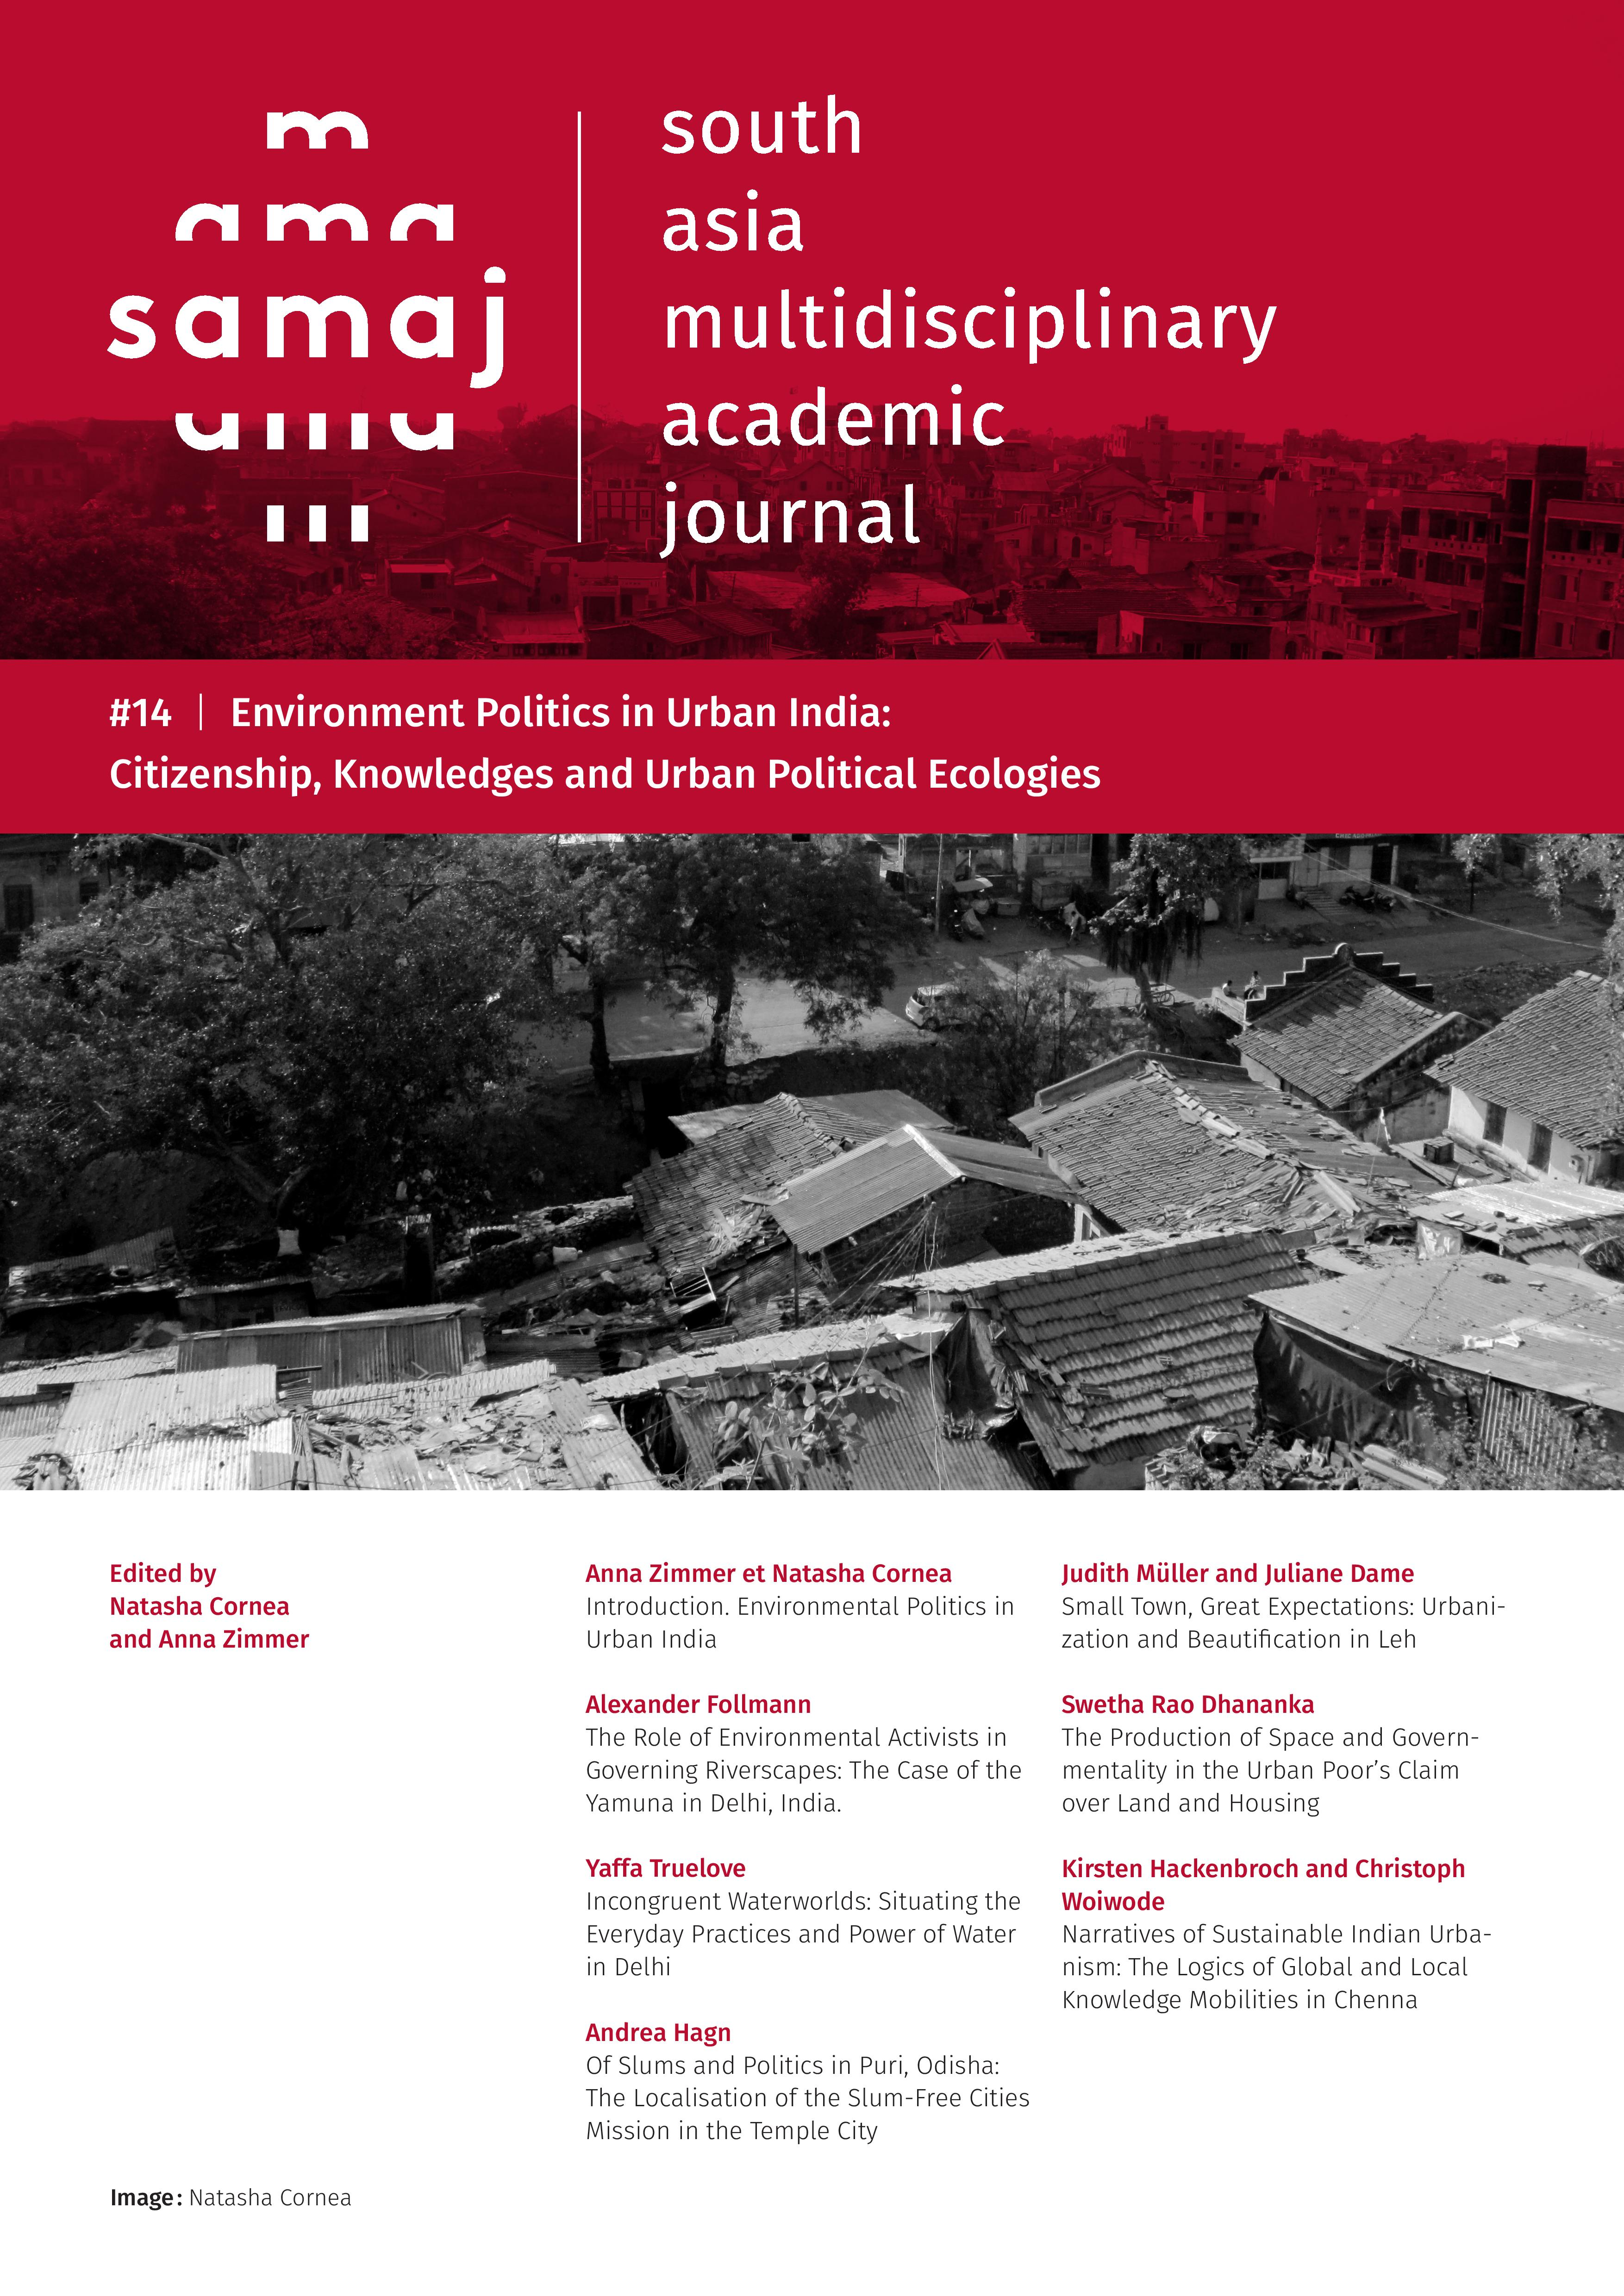 Environment Politics in Urban India: Citizenship, Knowledges and Urban Political Ecologies